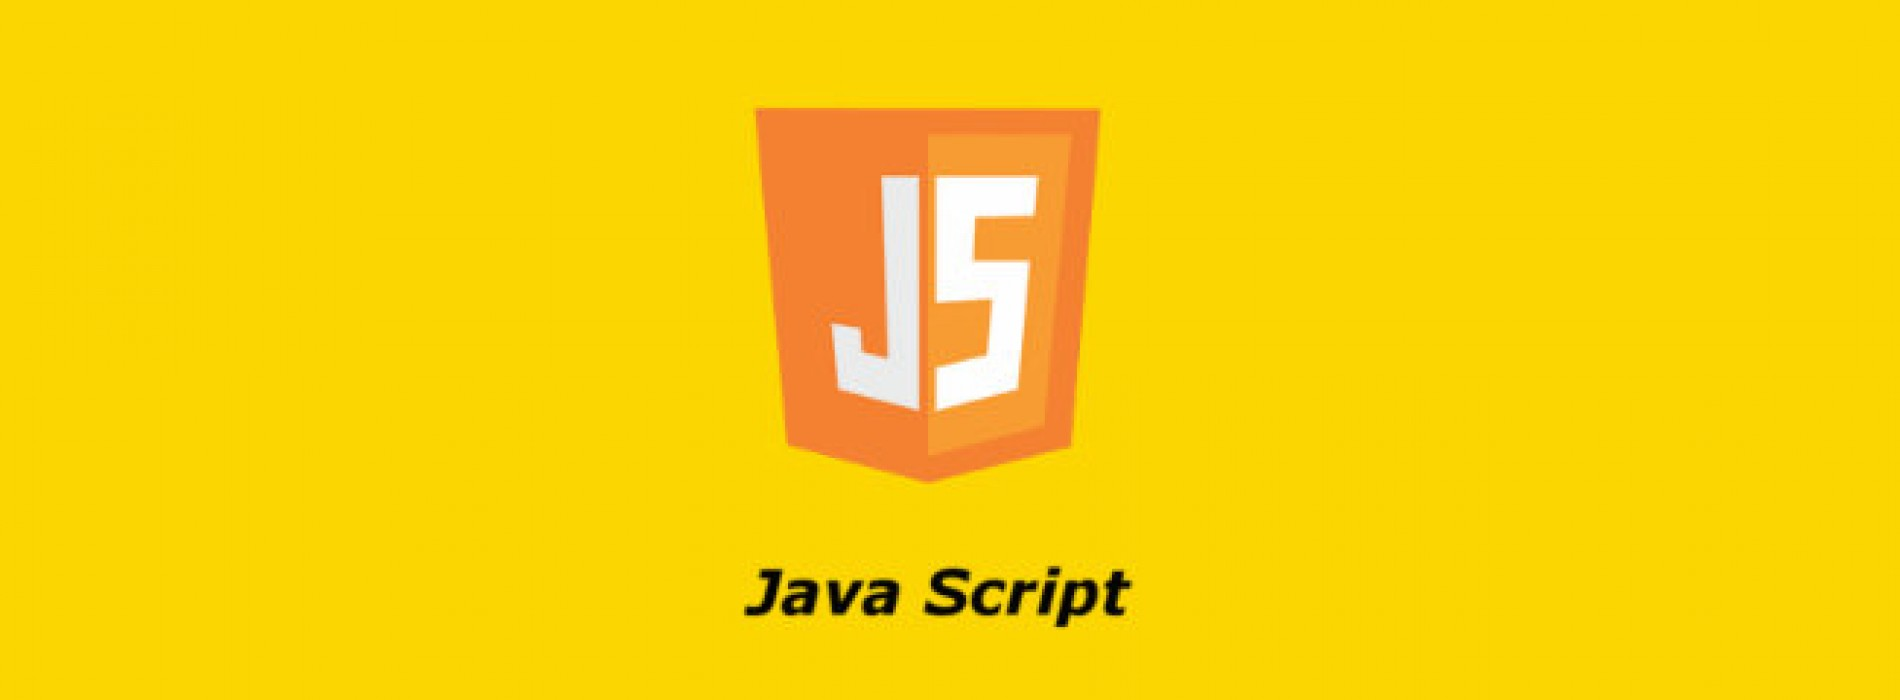 Is JavaScript the future?